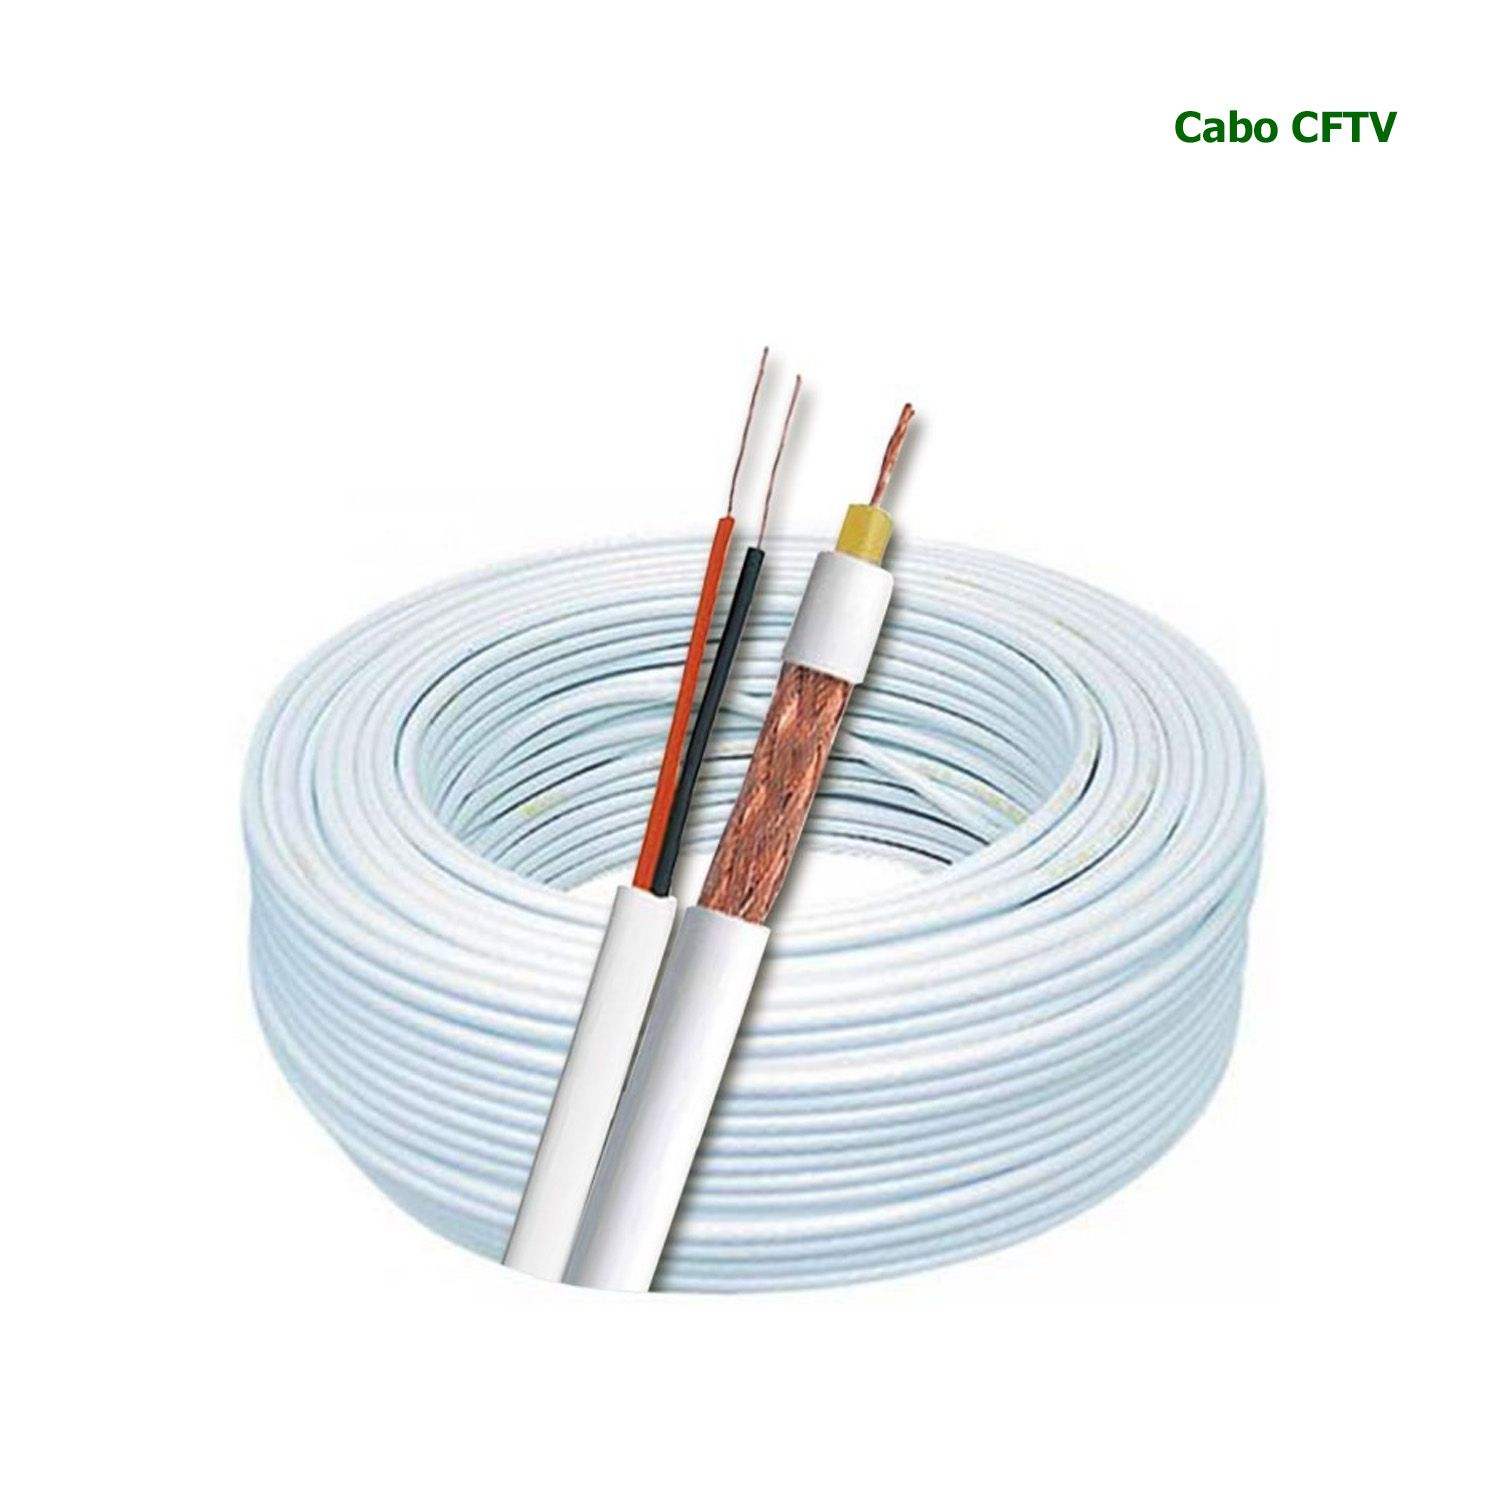 Cabo 4mm Flex + bipolar 2 X 2 6AWG 80% BRANCO (Cx 100m)